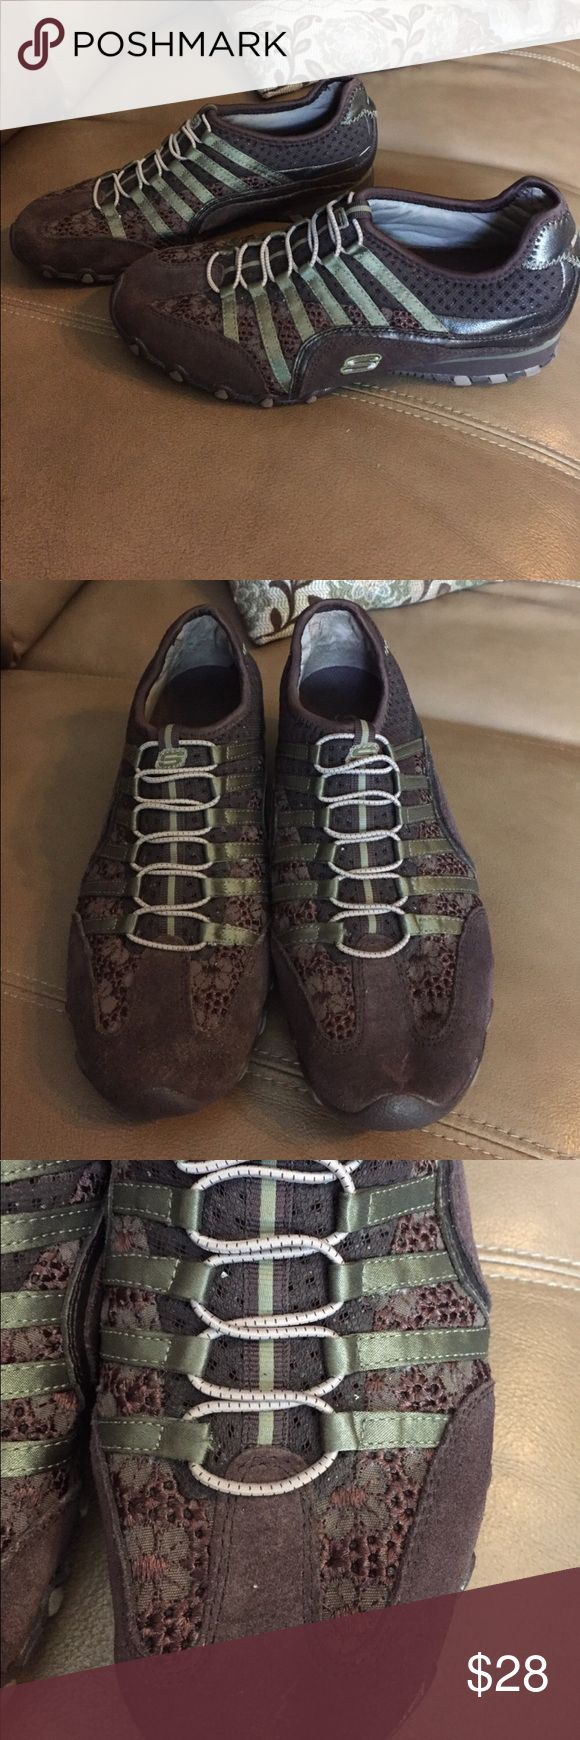 Women's Skechers Skechers slip on flats. Sz 8 great used condition. Skechers Shoes Athletic Shoes